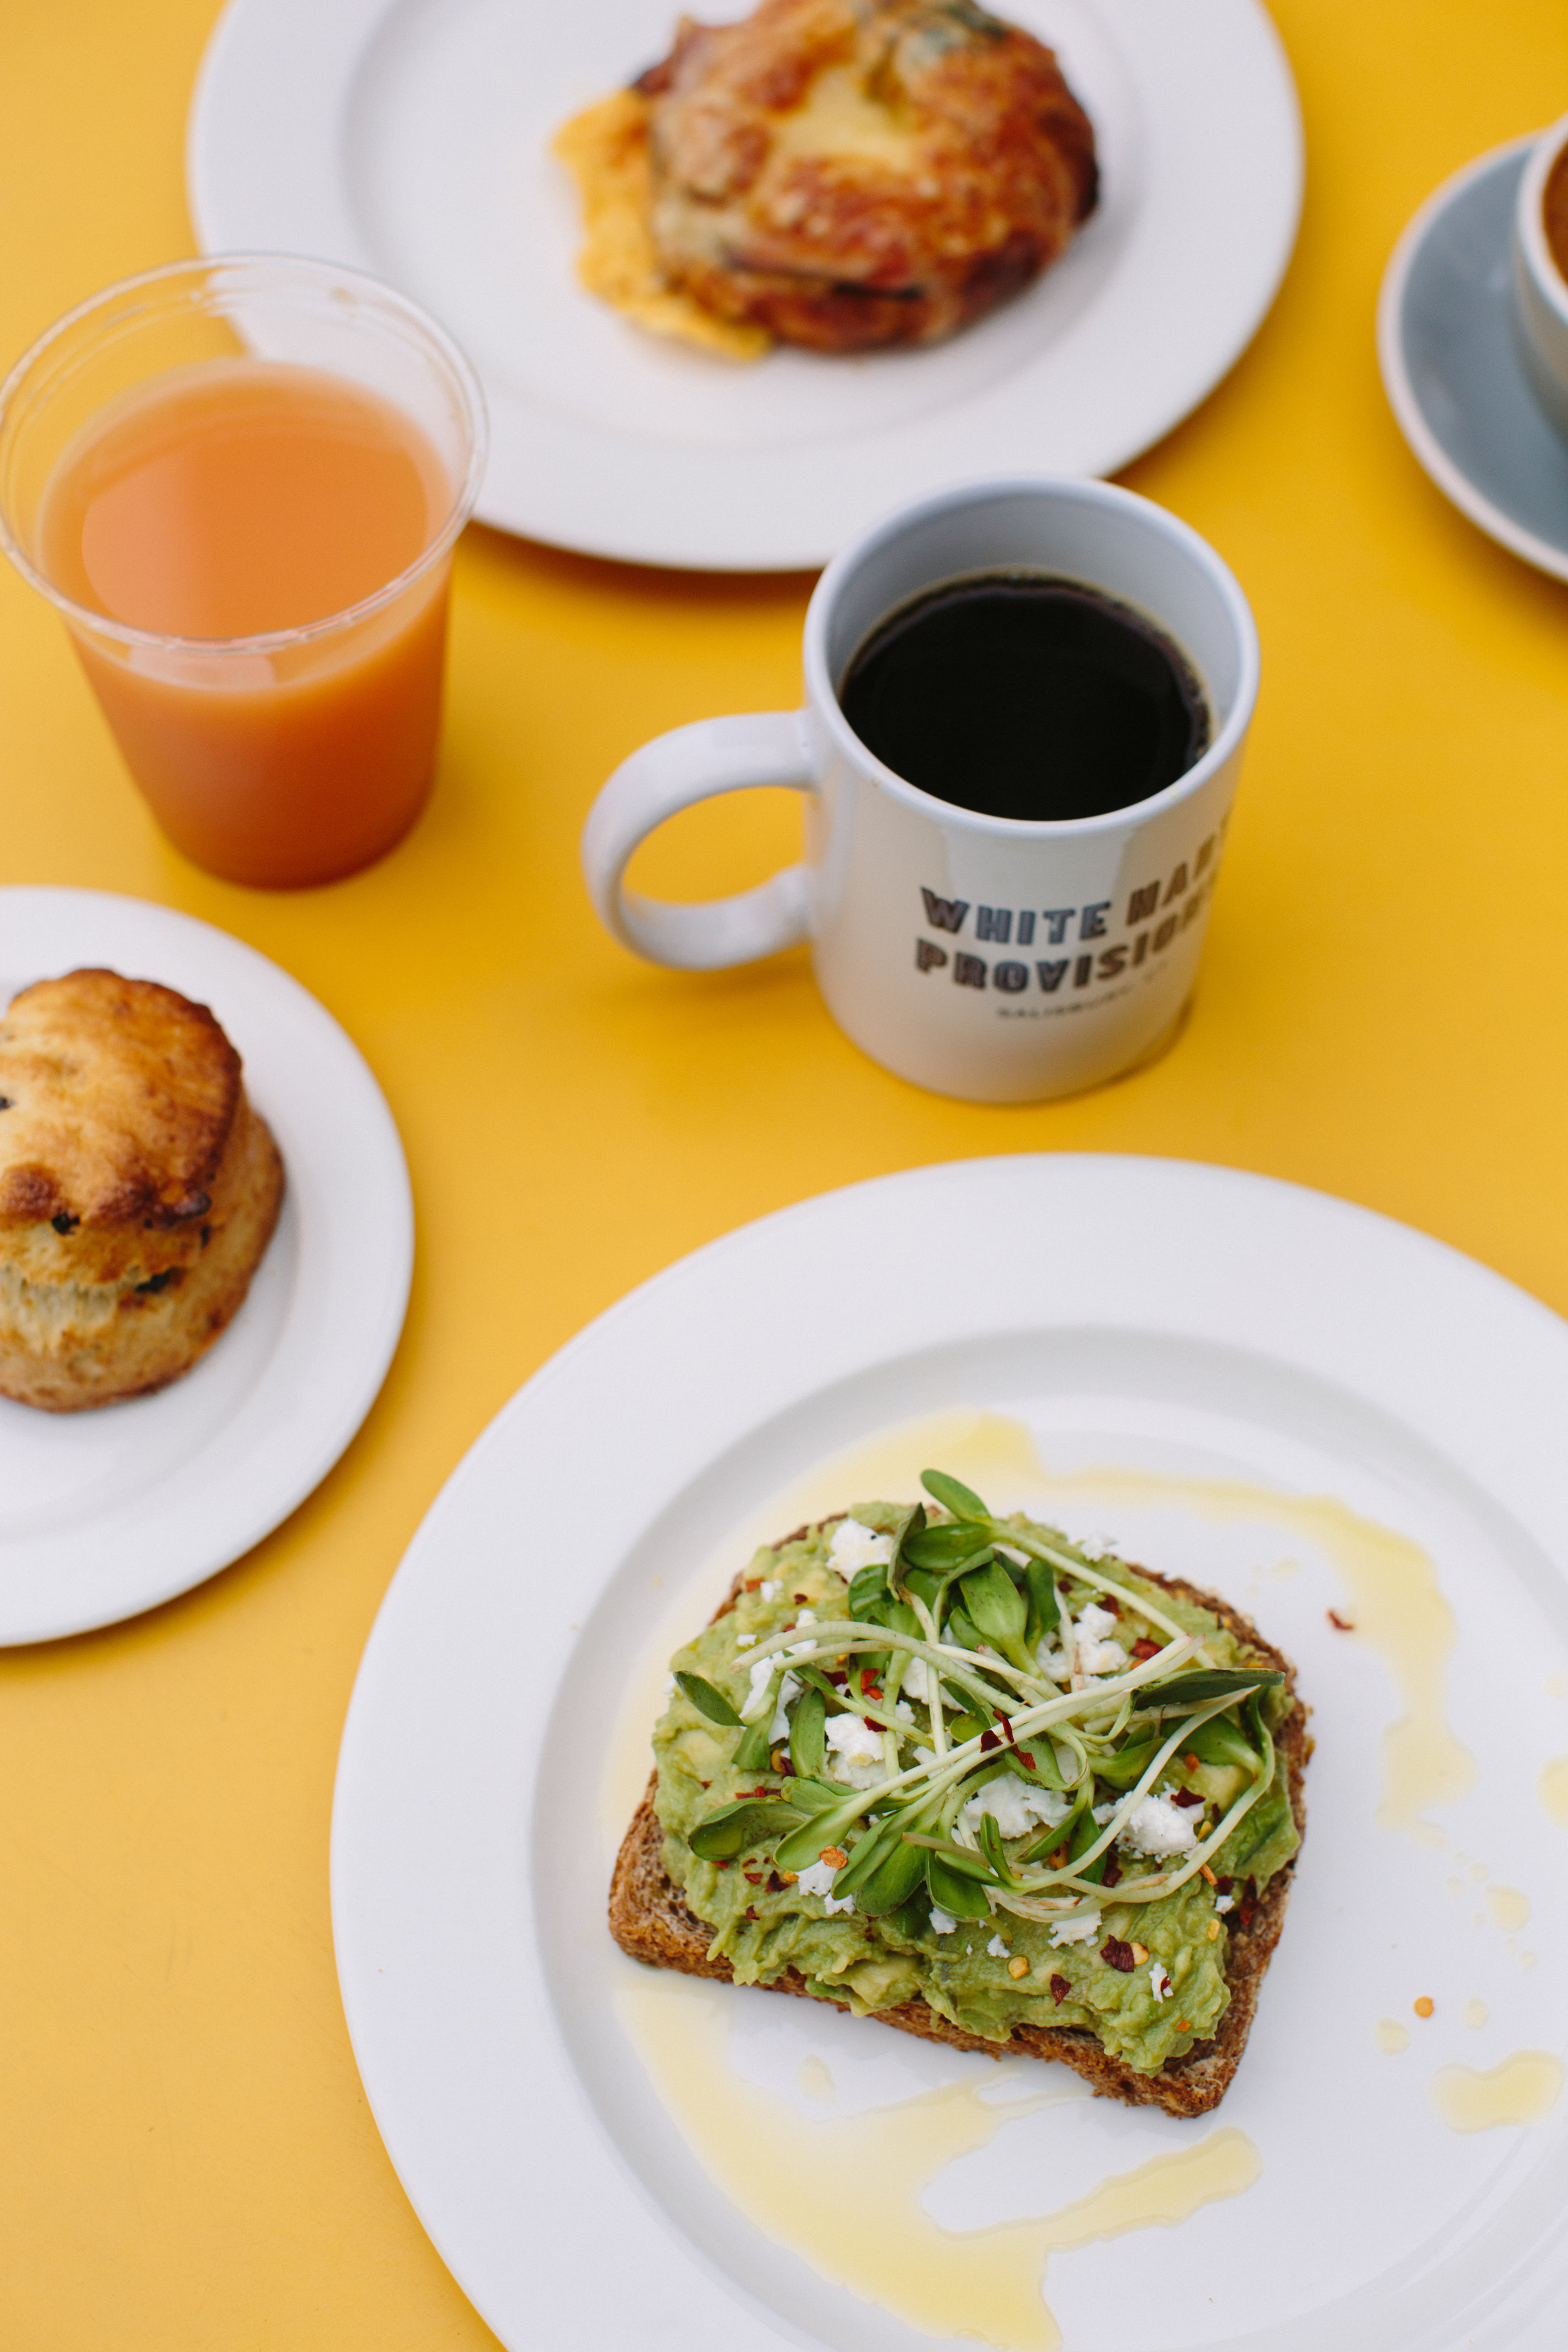 Litchfield County Travel Guide White Hart Provisions Breakfast.jpg